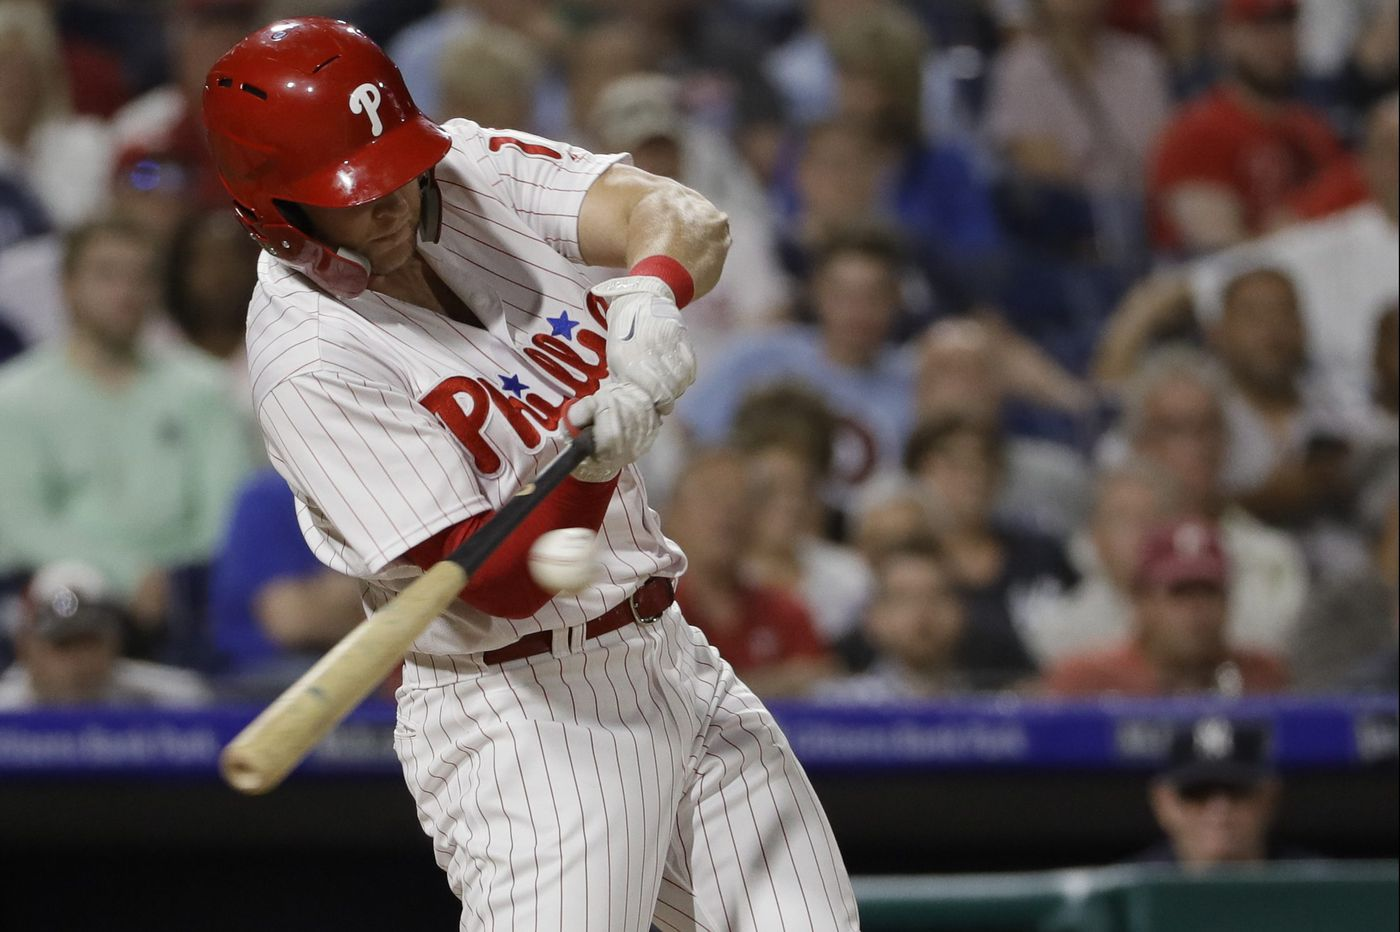 Rhys Hoskins regrets confrontation with fan | Marcus Hayes